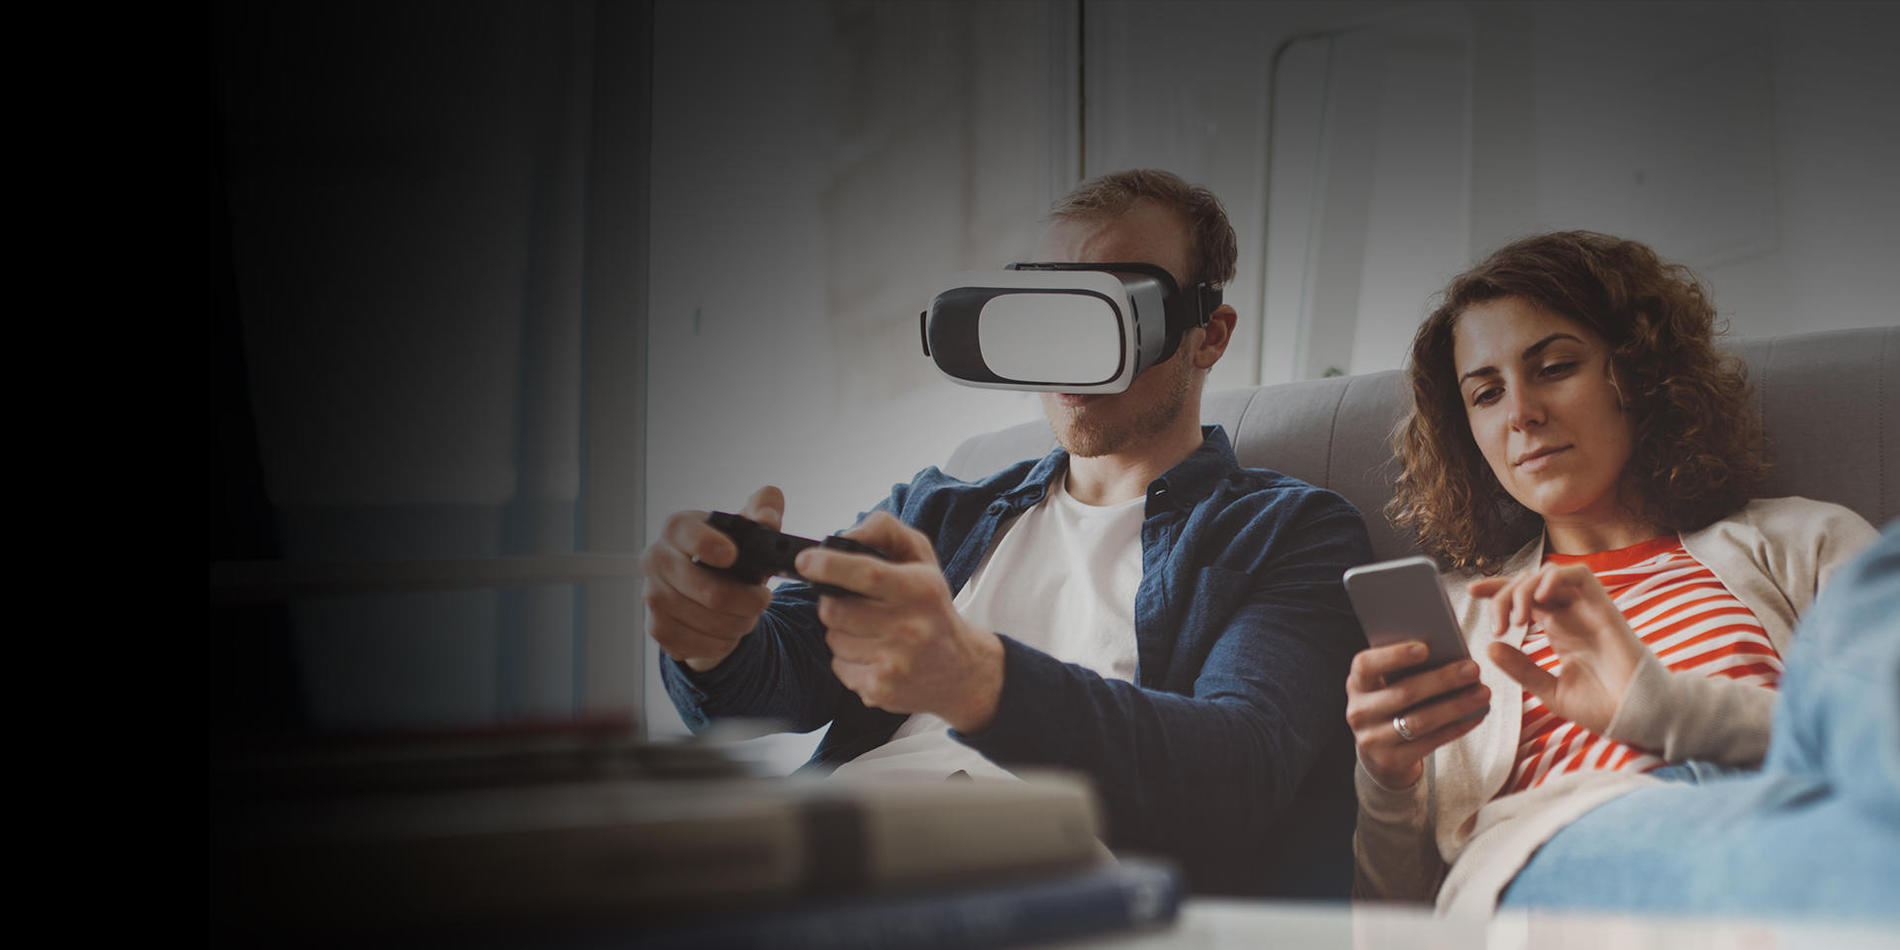 Photo of two people on a couch using Optimum high-speed internet connected devices - one playing video games on a virtual reality headset while another scrolls on a smartphone